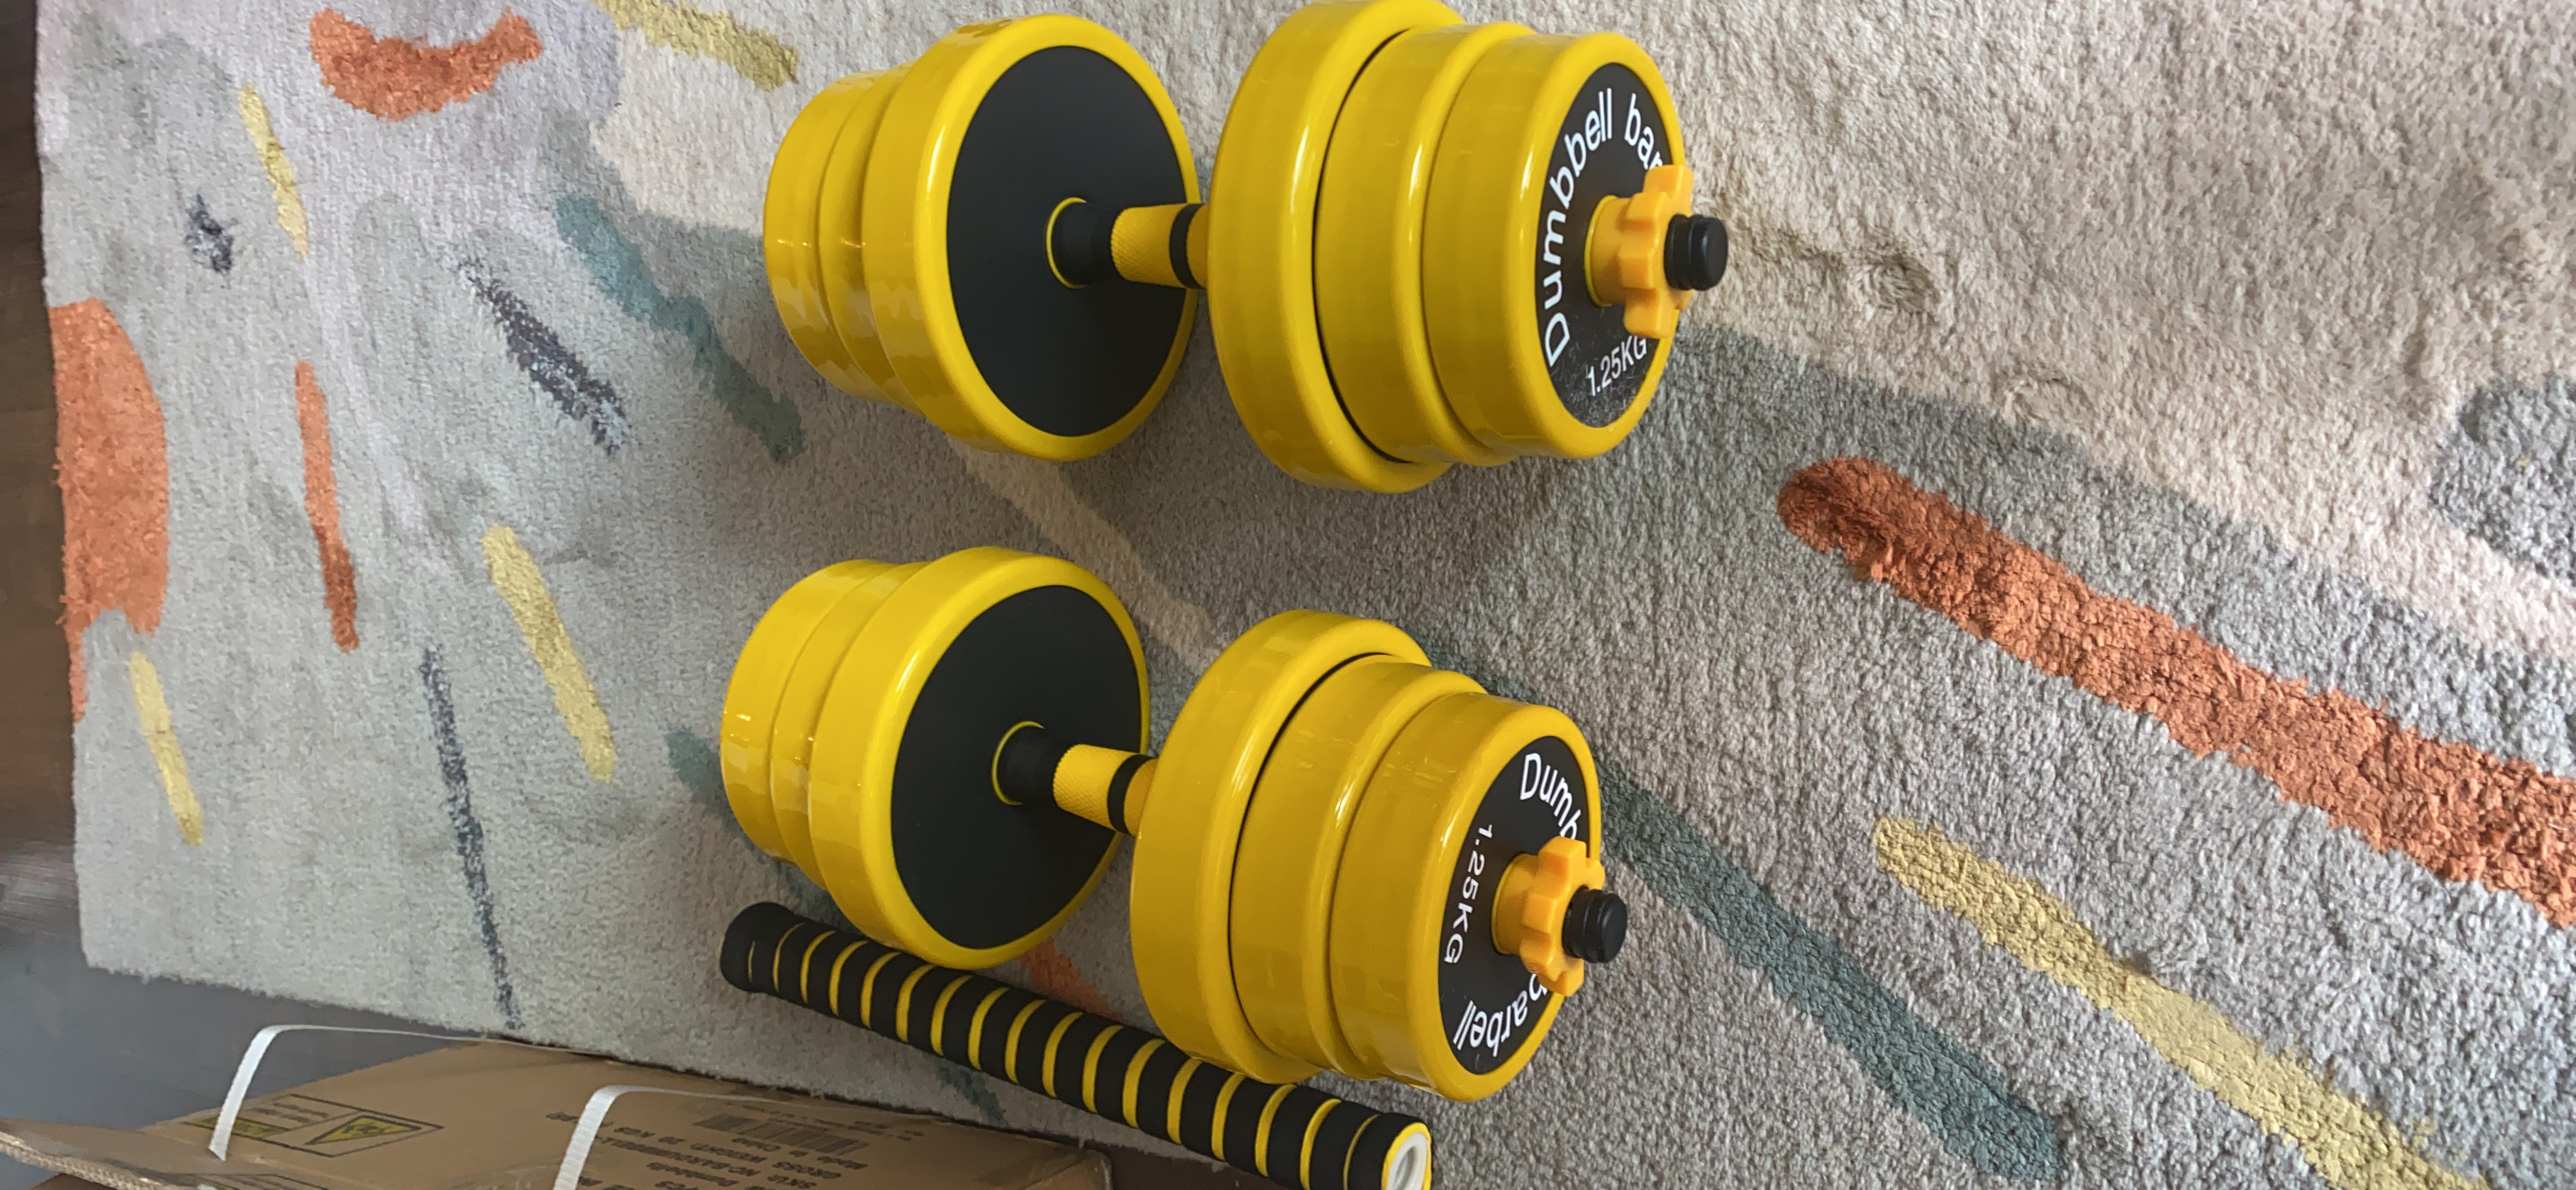 Nice C Adjustable Dumbbell Barbell Weight Pair, Free Weights 2-in-1 Set, Non-Slip Neoprene Hand, All-Purpose, Home, Gym, Office photo review